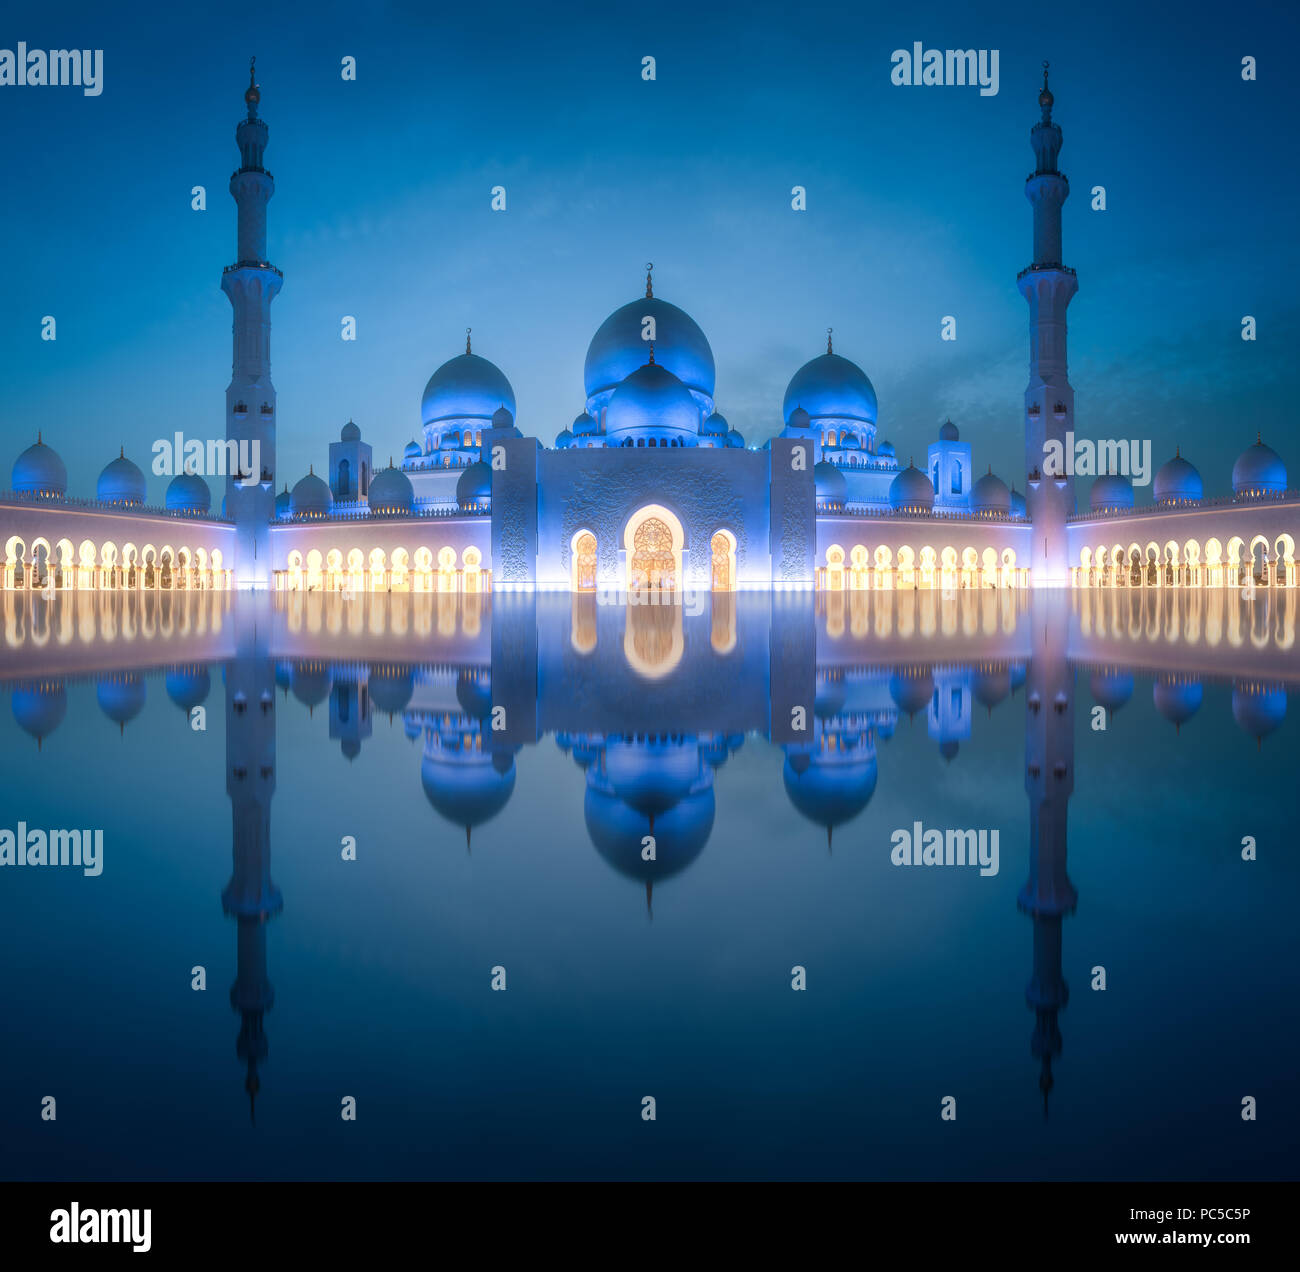 Sheikh Zayed Grand Mosque at night Abu-Dhabi, UAE - Stock Image